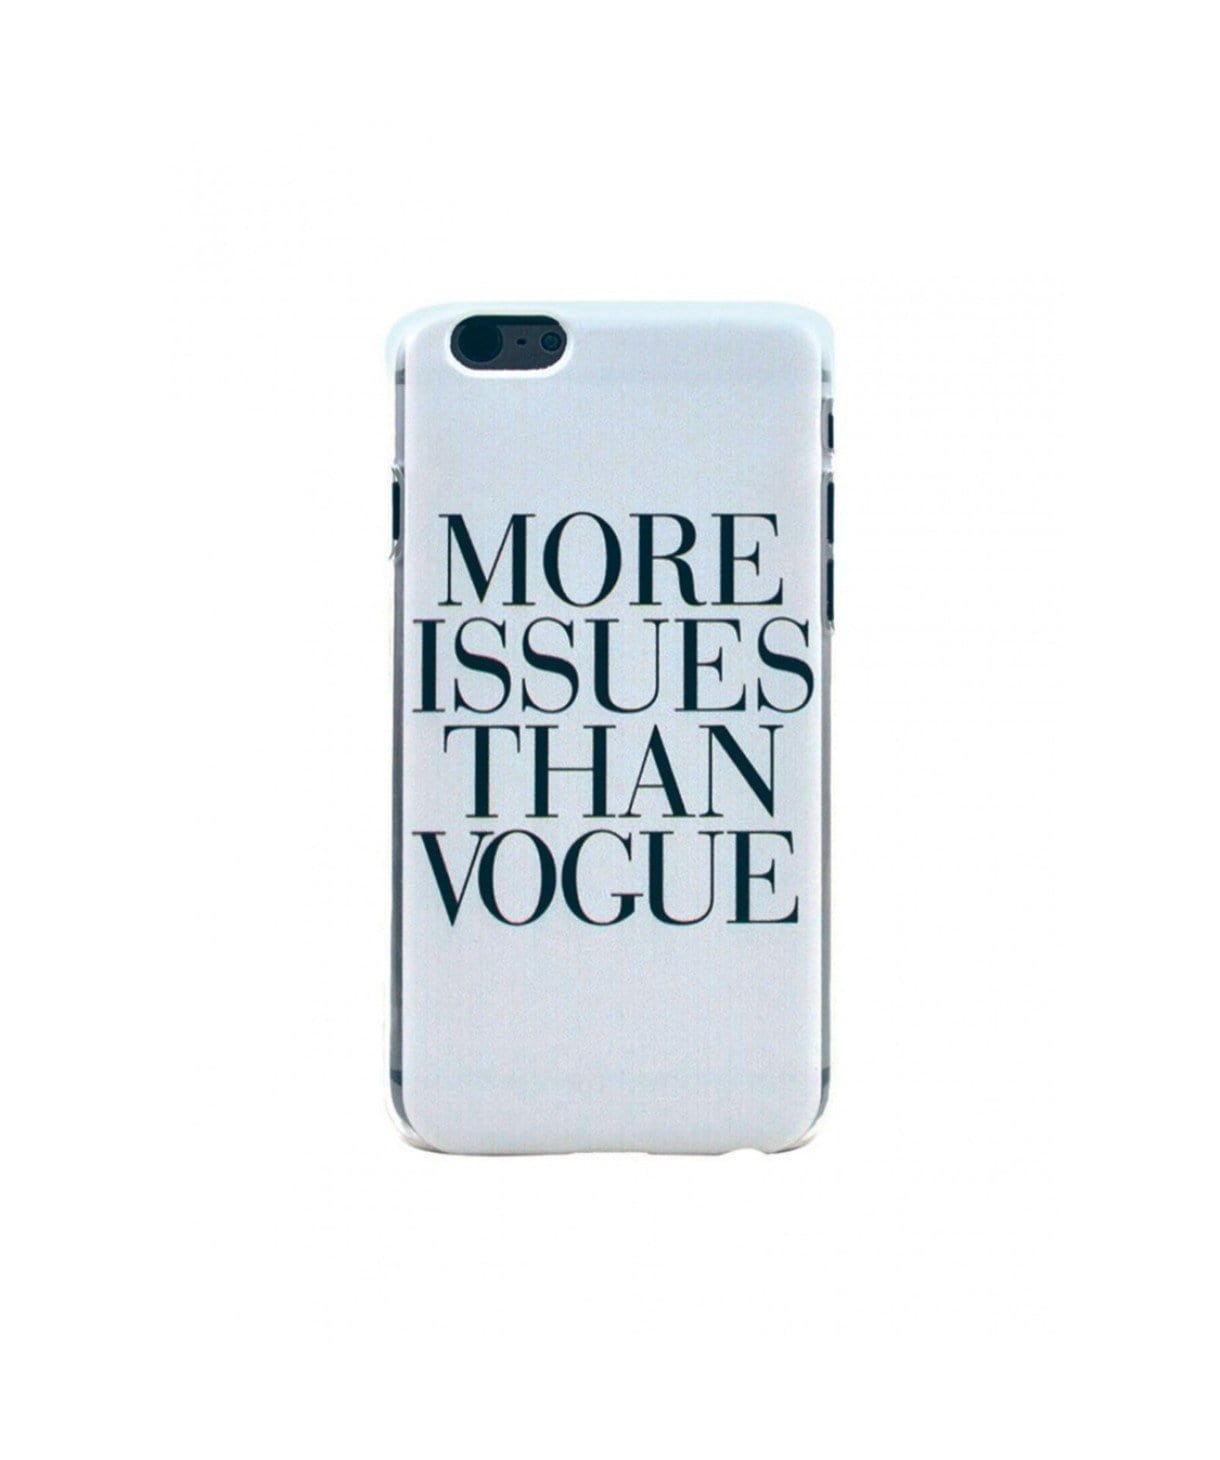 Miss Vogue IPhone Cover (Personalisation Available) - Uptownie